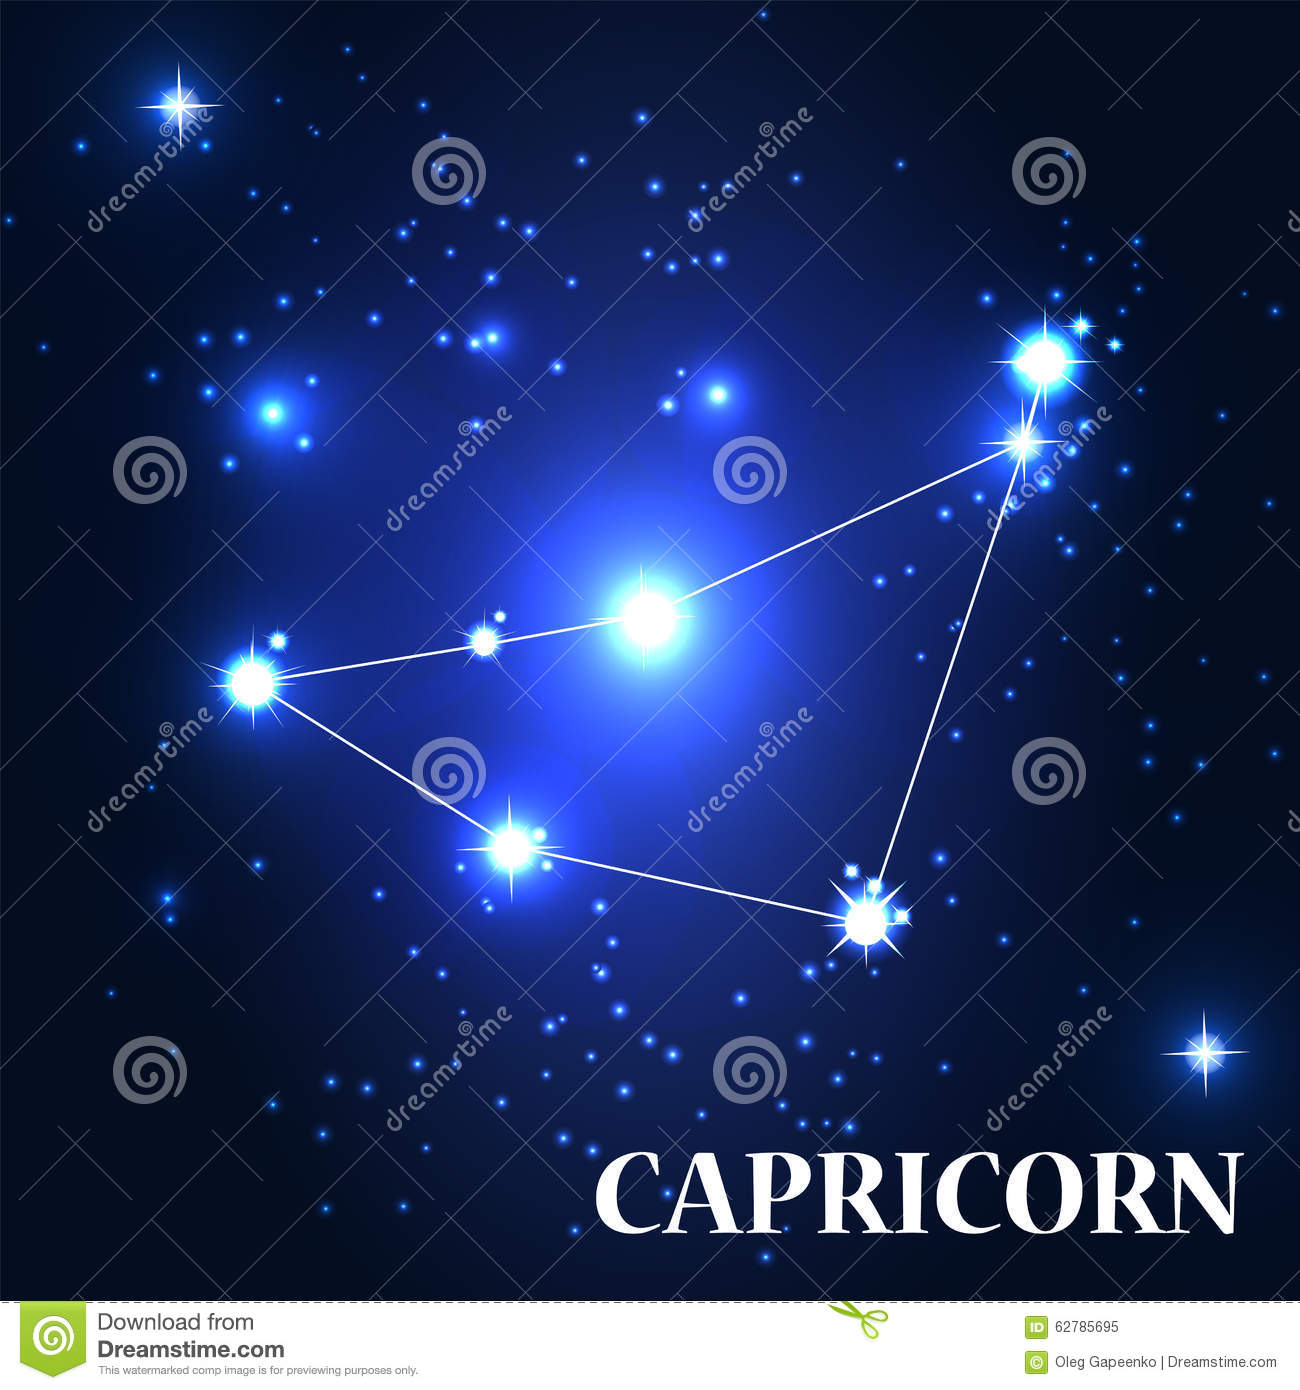 Symbol Capricorn Zodiac Sign Vector Illustration Stock Vector